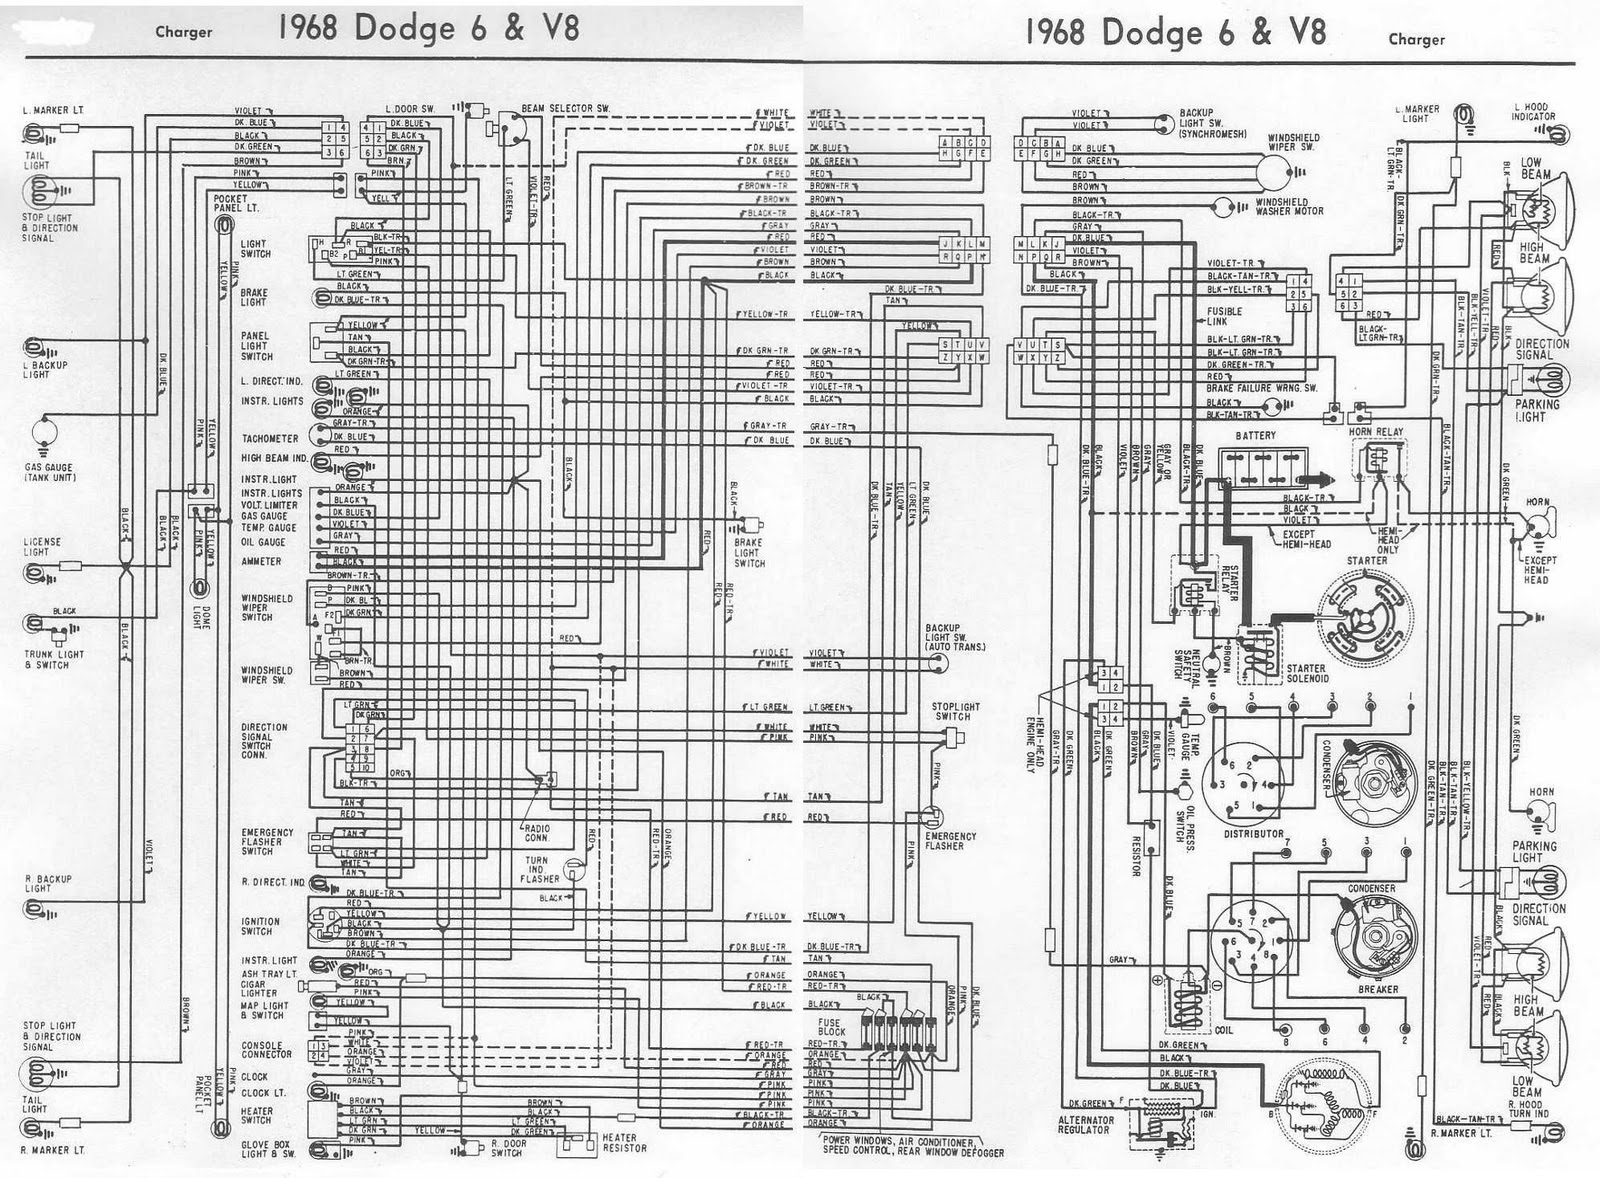 dodge charger 1968 6 and v8 complete electrical wiring diagram all rh diagramonwiring blogspot com dodge wiring diagrams / schematics Dodge Truck Wiring Schematics